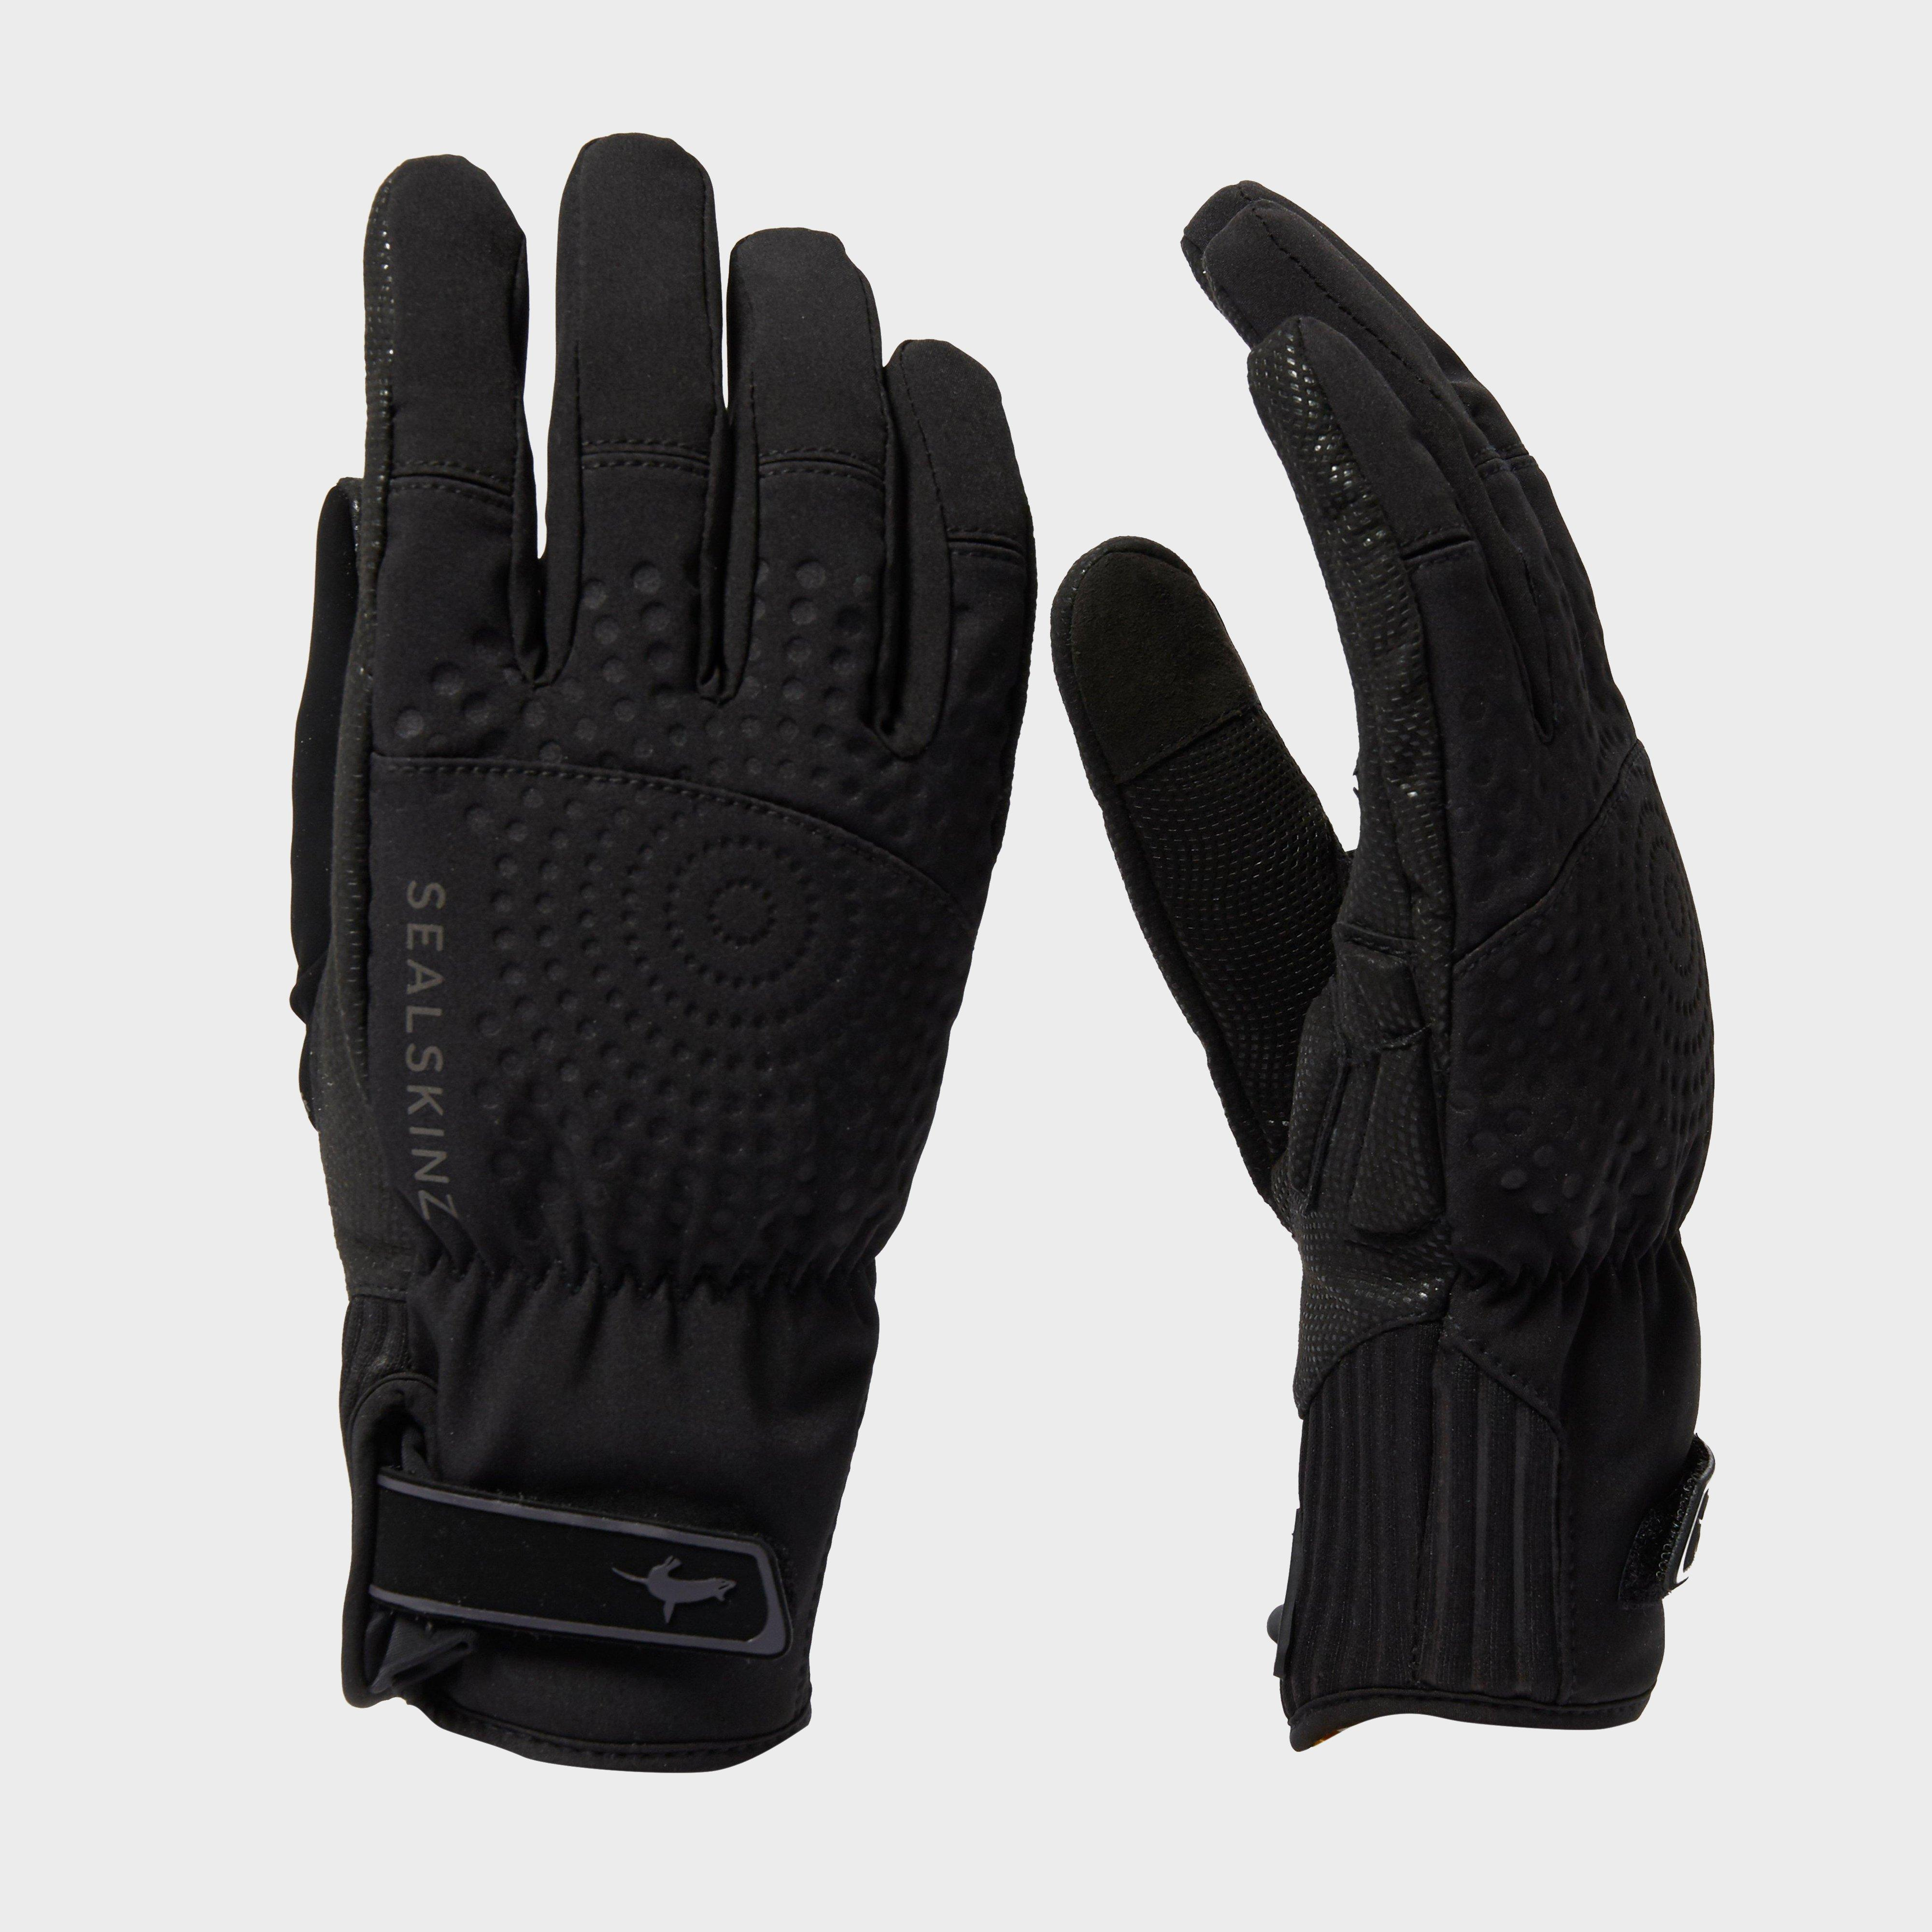 Sealskinz Women's Brecon XP Gloves, Black